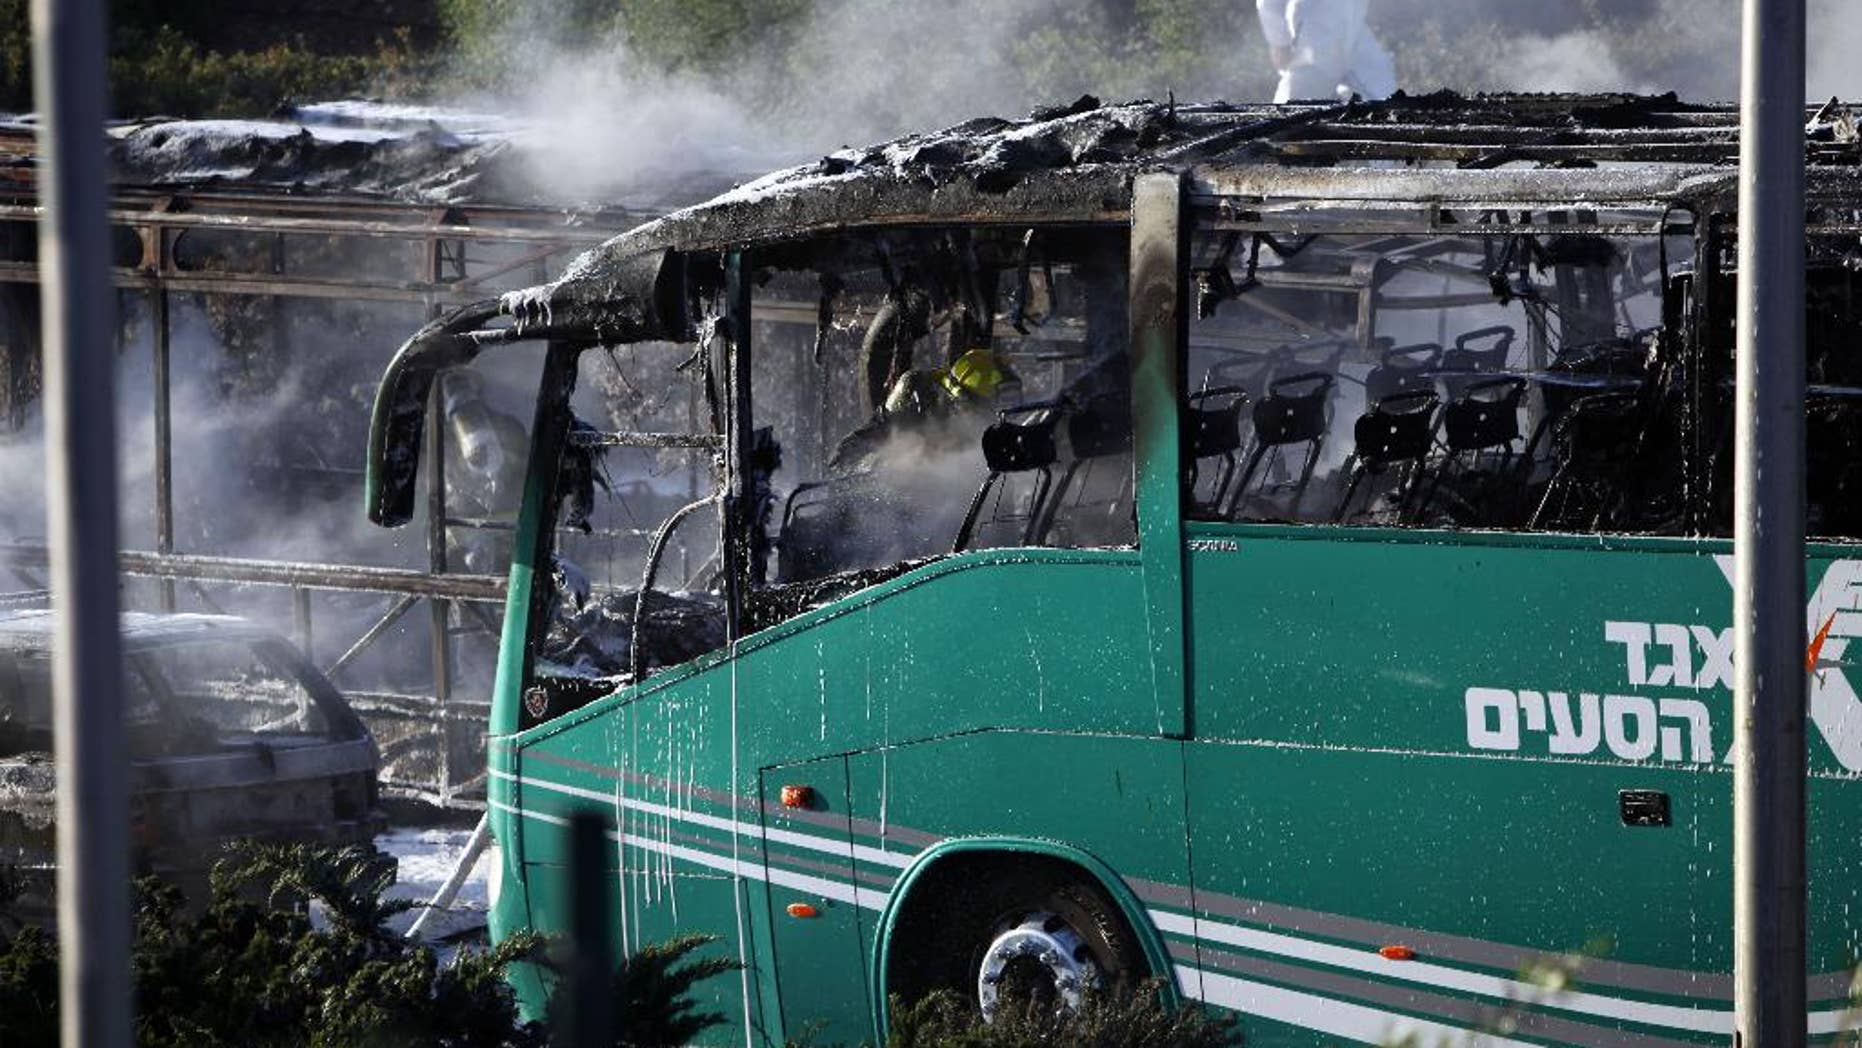 A bus exploded in the heart of Jerusalem Monday, wounding nearly 20 people.